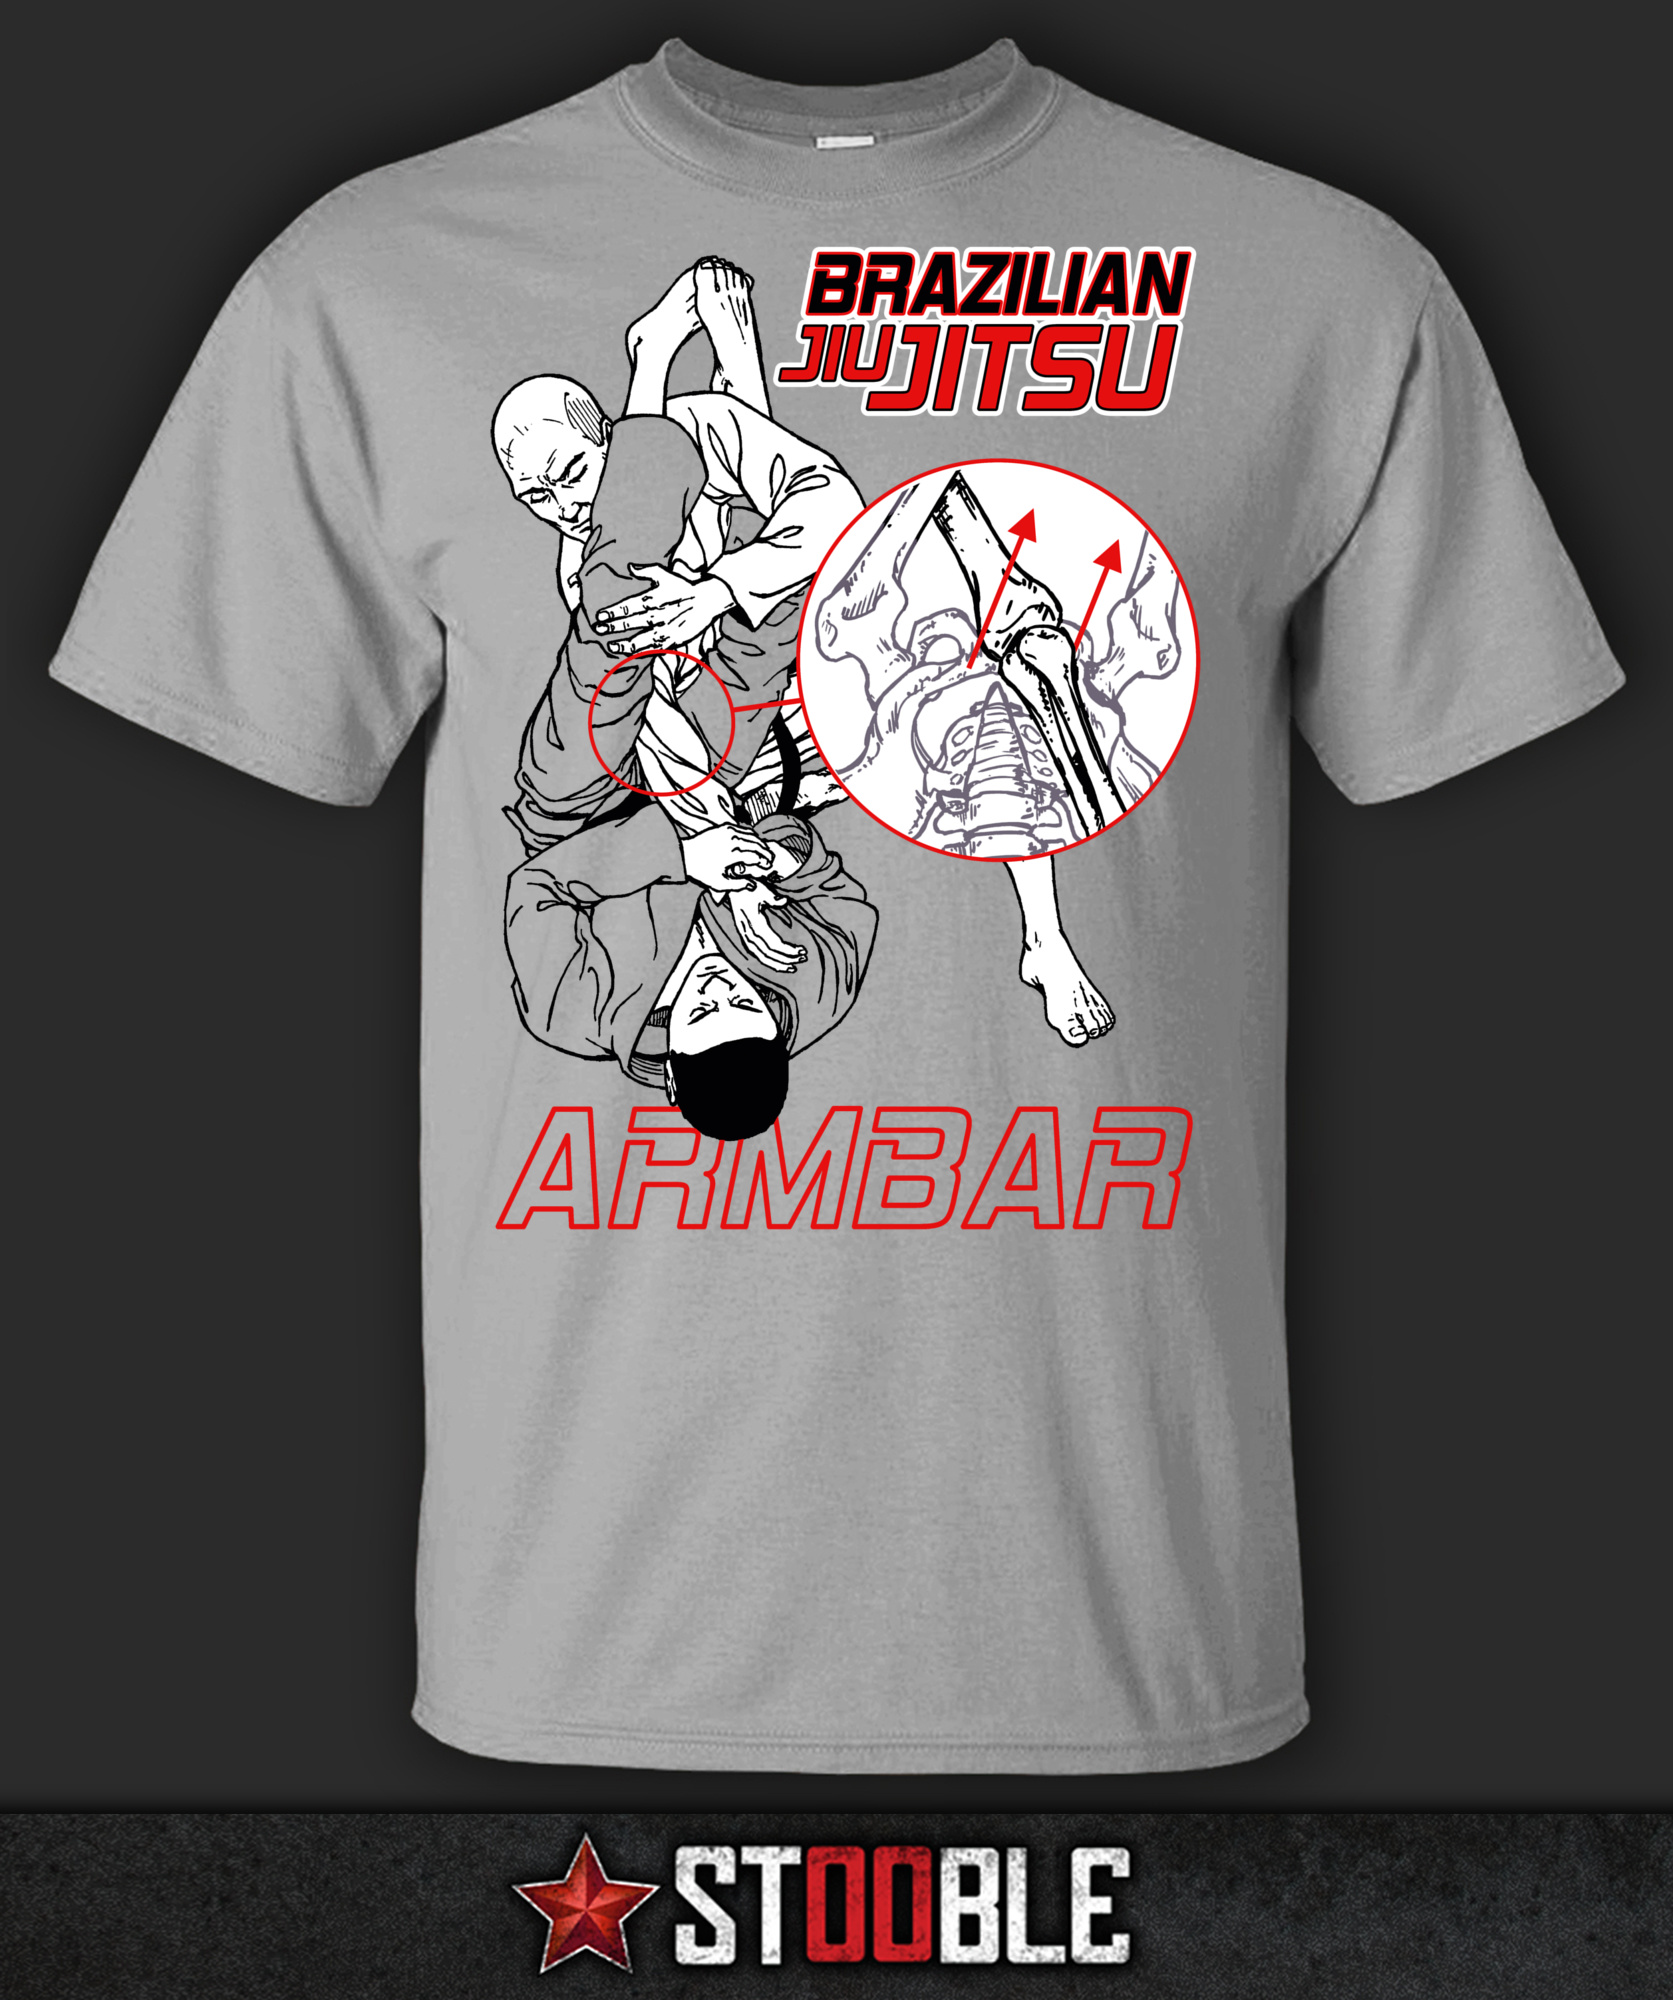 Brazilian Jiu Jitsu BJJ Armbar T-Shirt - New - Direct from Manufacturer